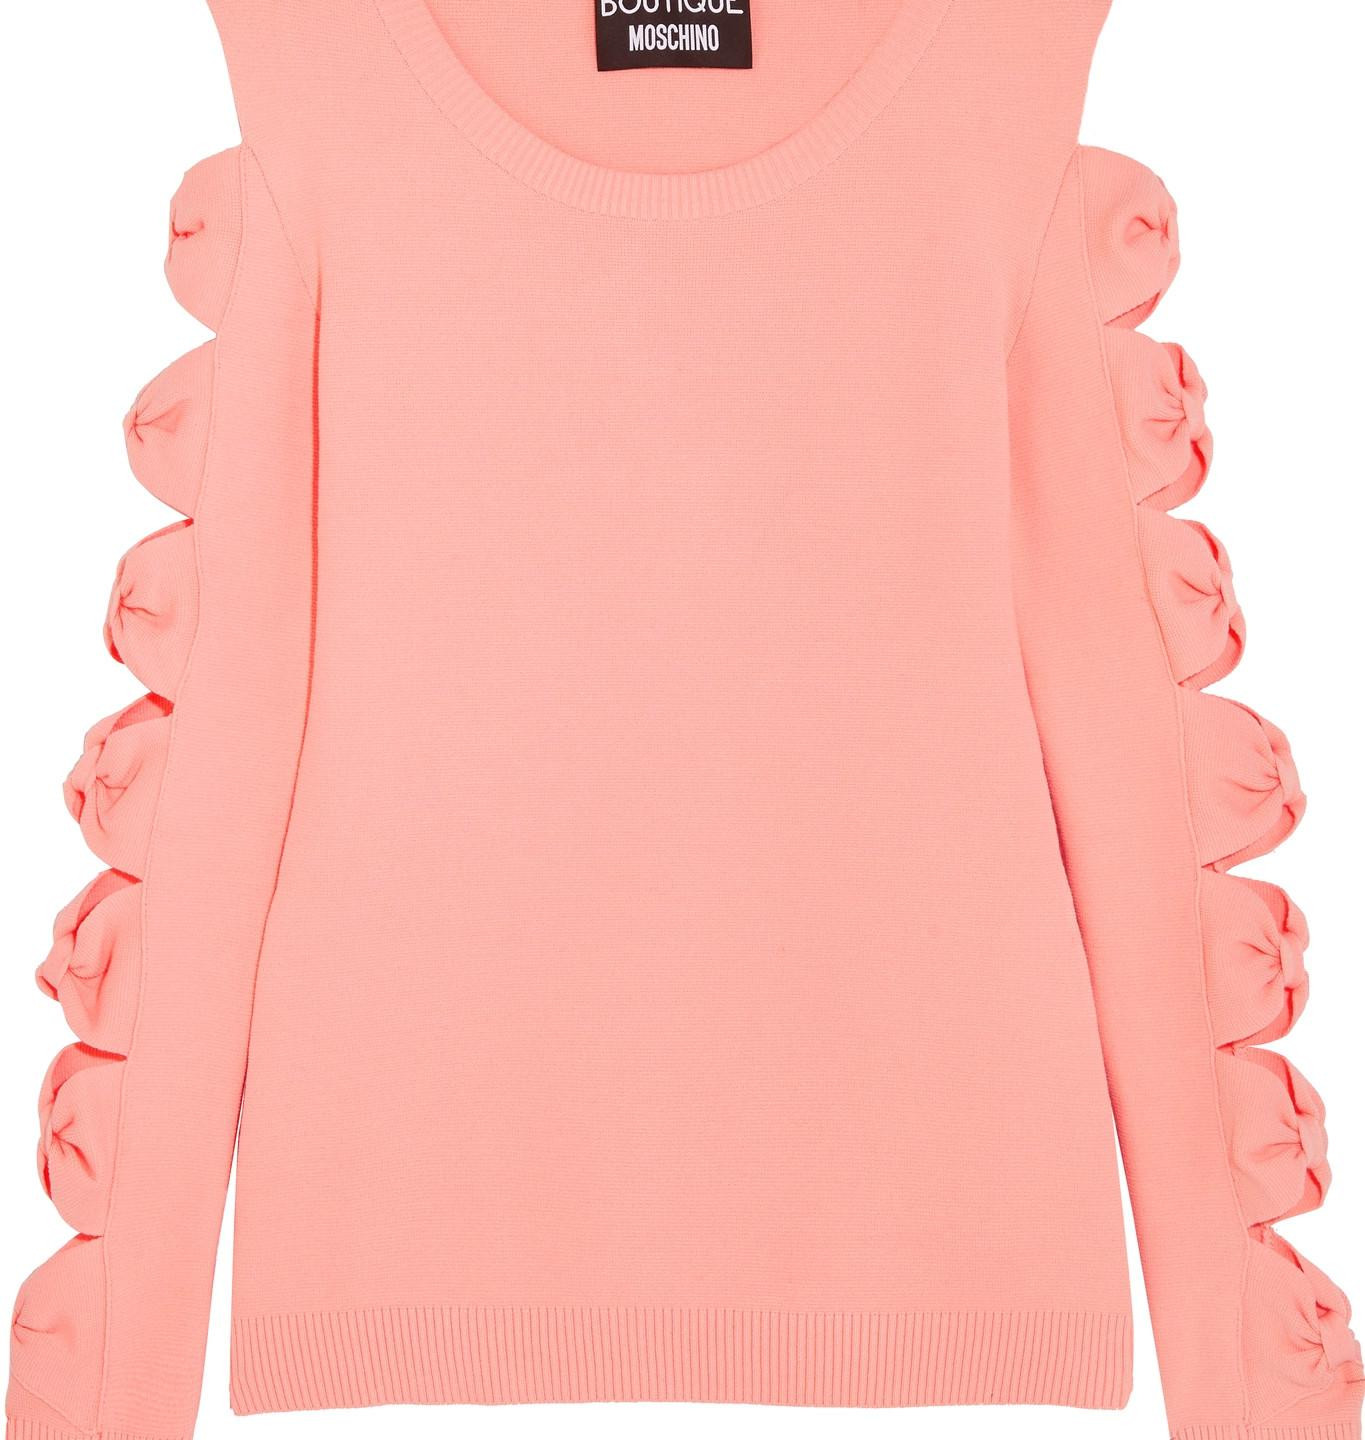 Now you see me, now you don't CUT OUT BOW DETAIL JUMPER £276, BOUTIQUE MOSCHINO AT VOISINS